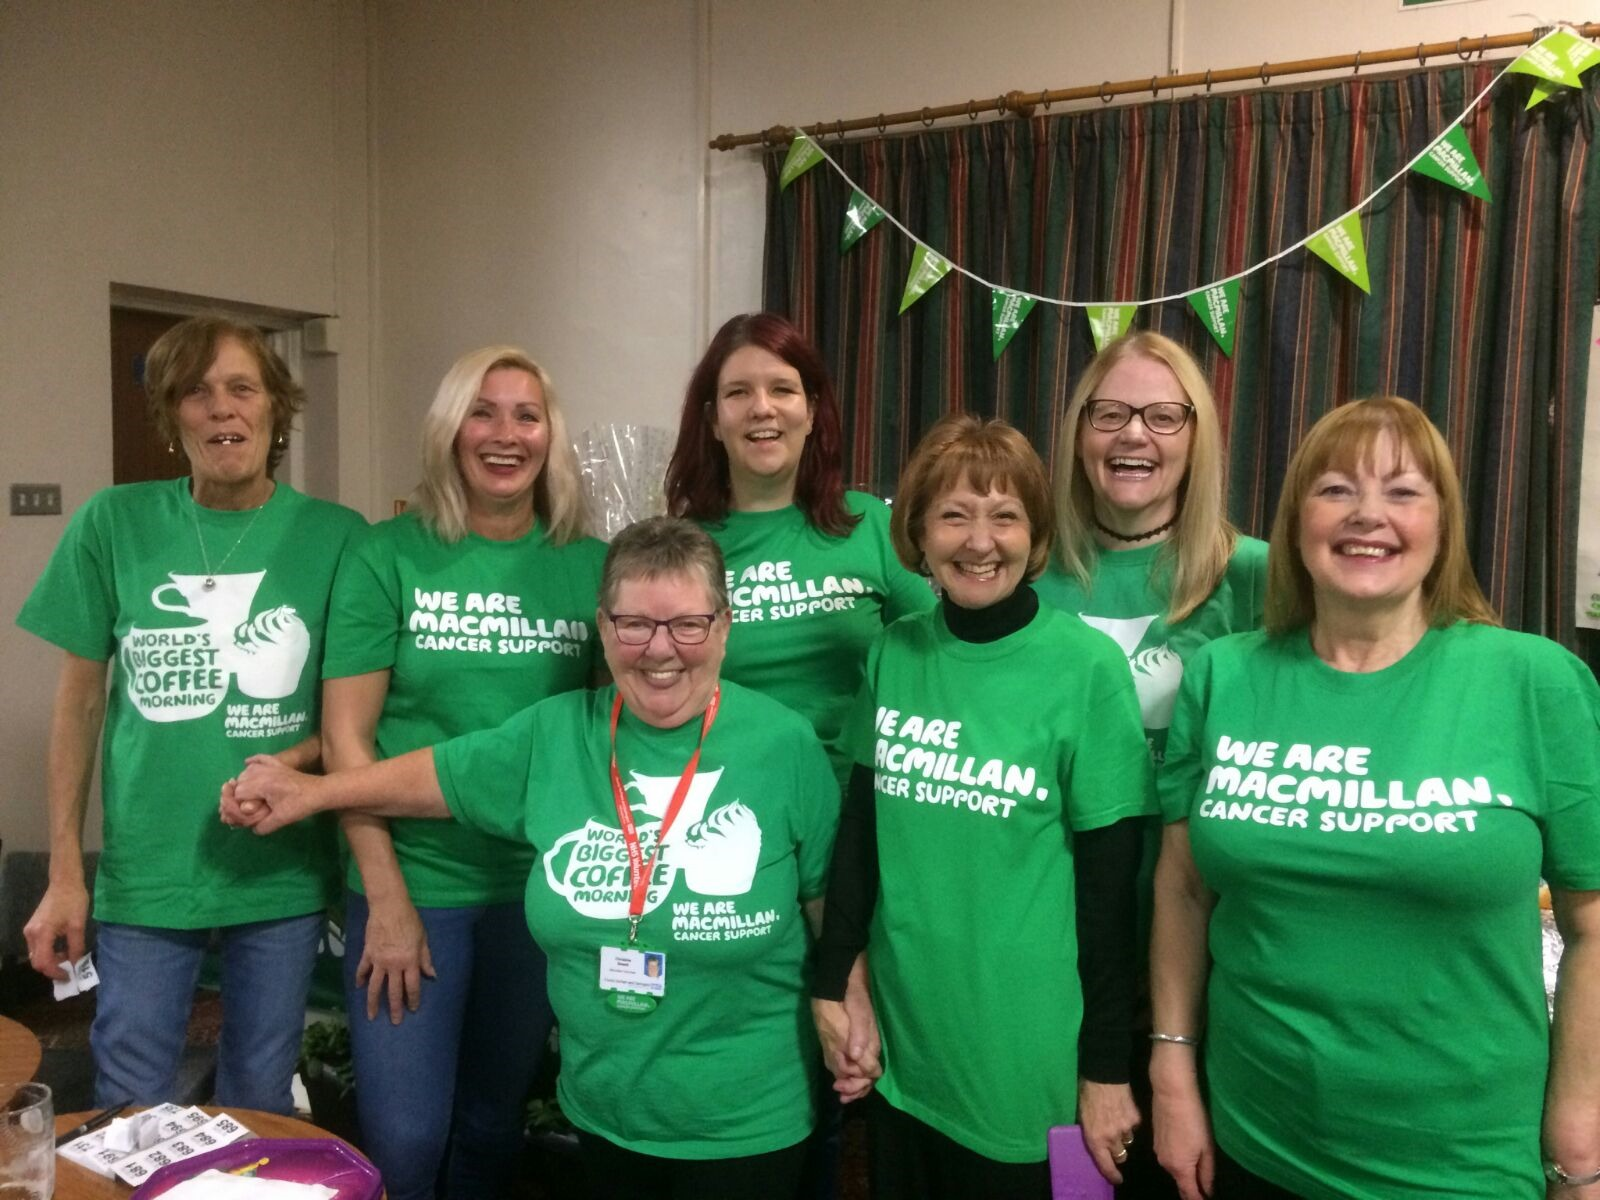 ROCK: Christine Sewell (third from left) and her team of fundraisers from Sherburn Village, who are putting on a rock night to raise money for Macmillan Cancer Support